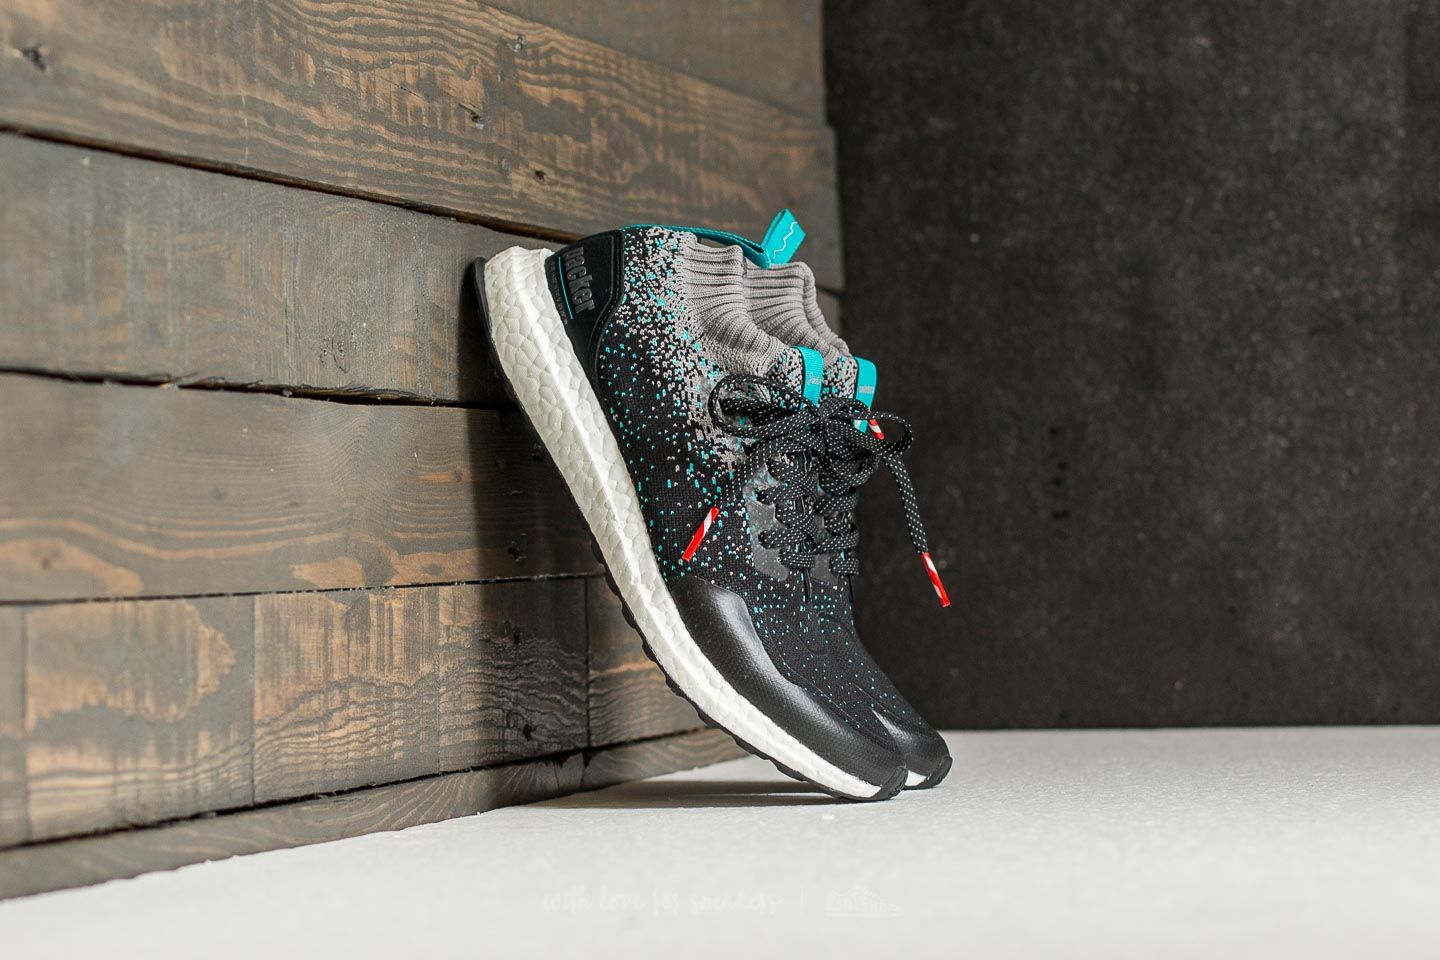 935f918e6313c adidas Consortium x Packer x Solebox Ultraboost Mid S.E. Core Black  Energy  Blue